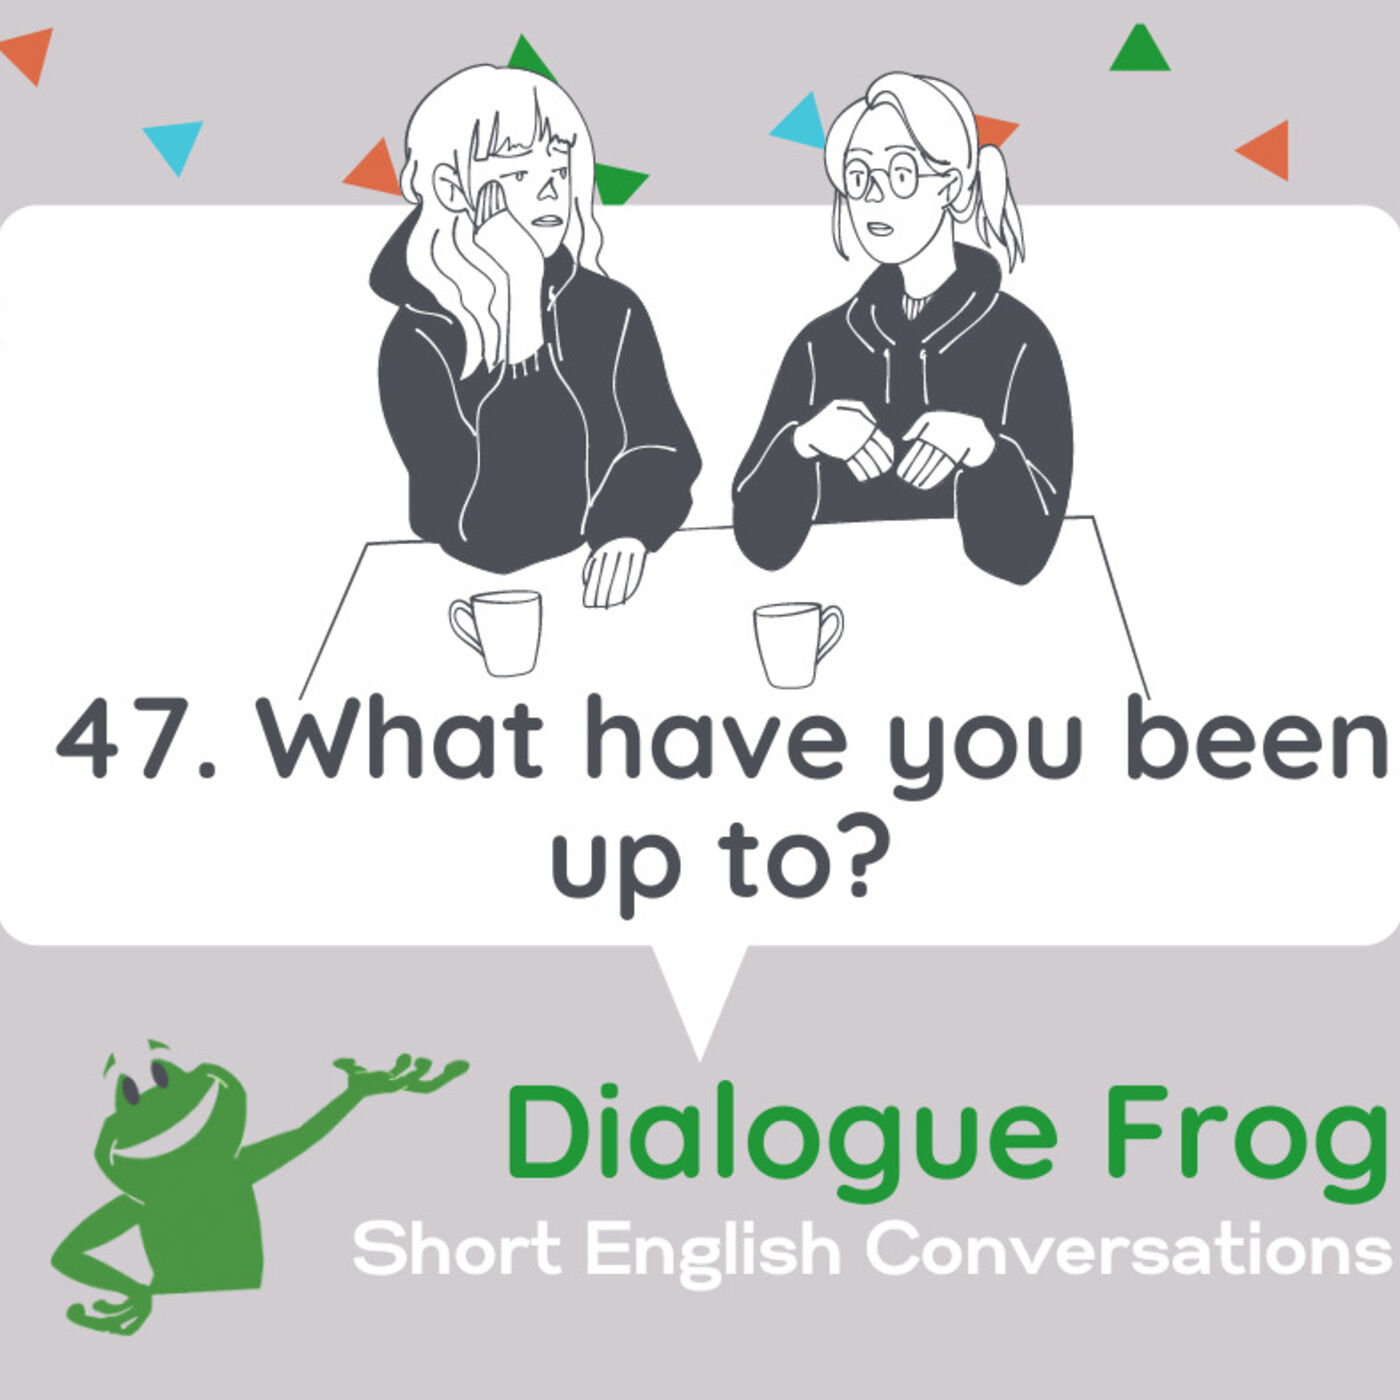 047 What have you been up to? – Short Dialogue in English